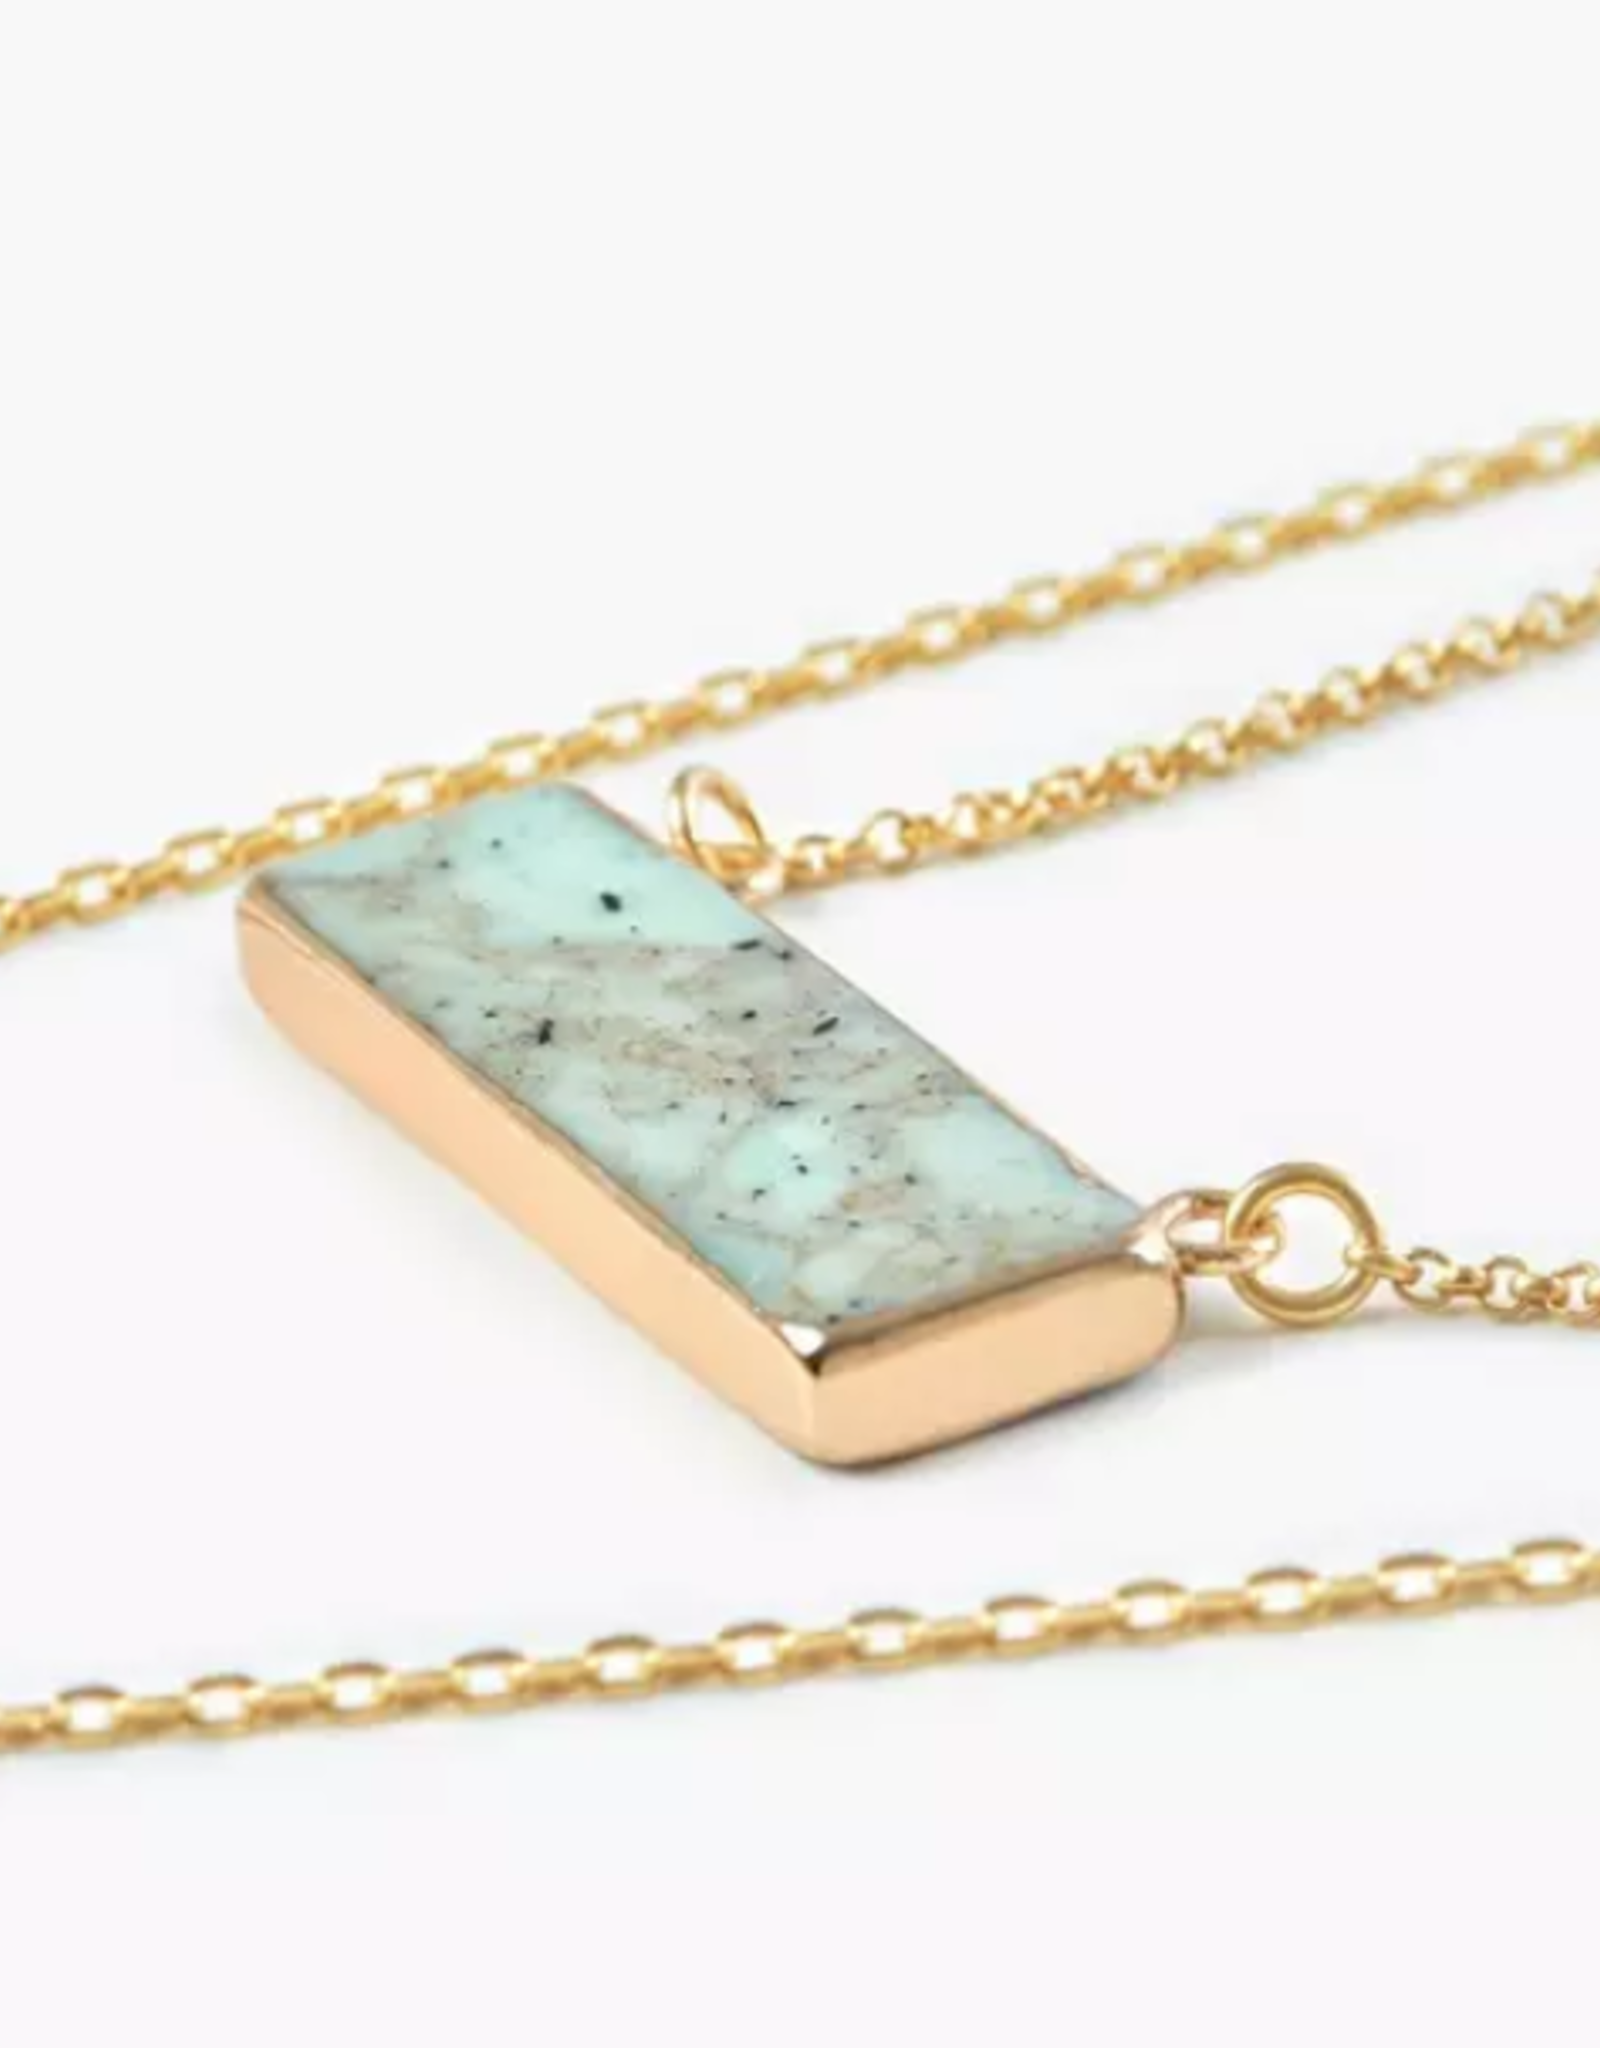 2 Layer stone necklace